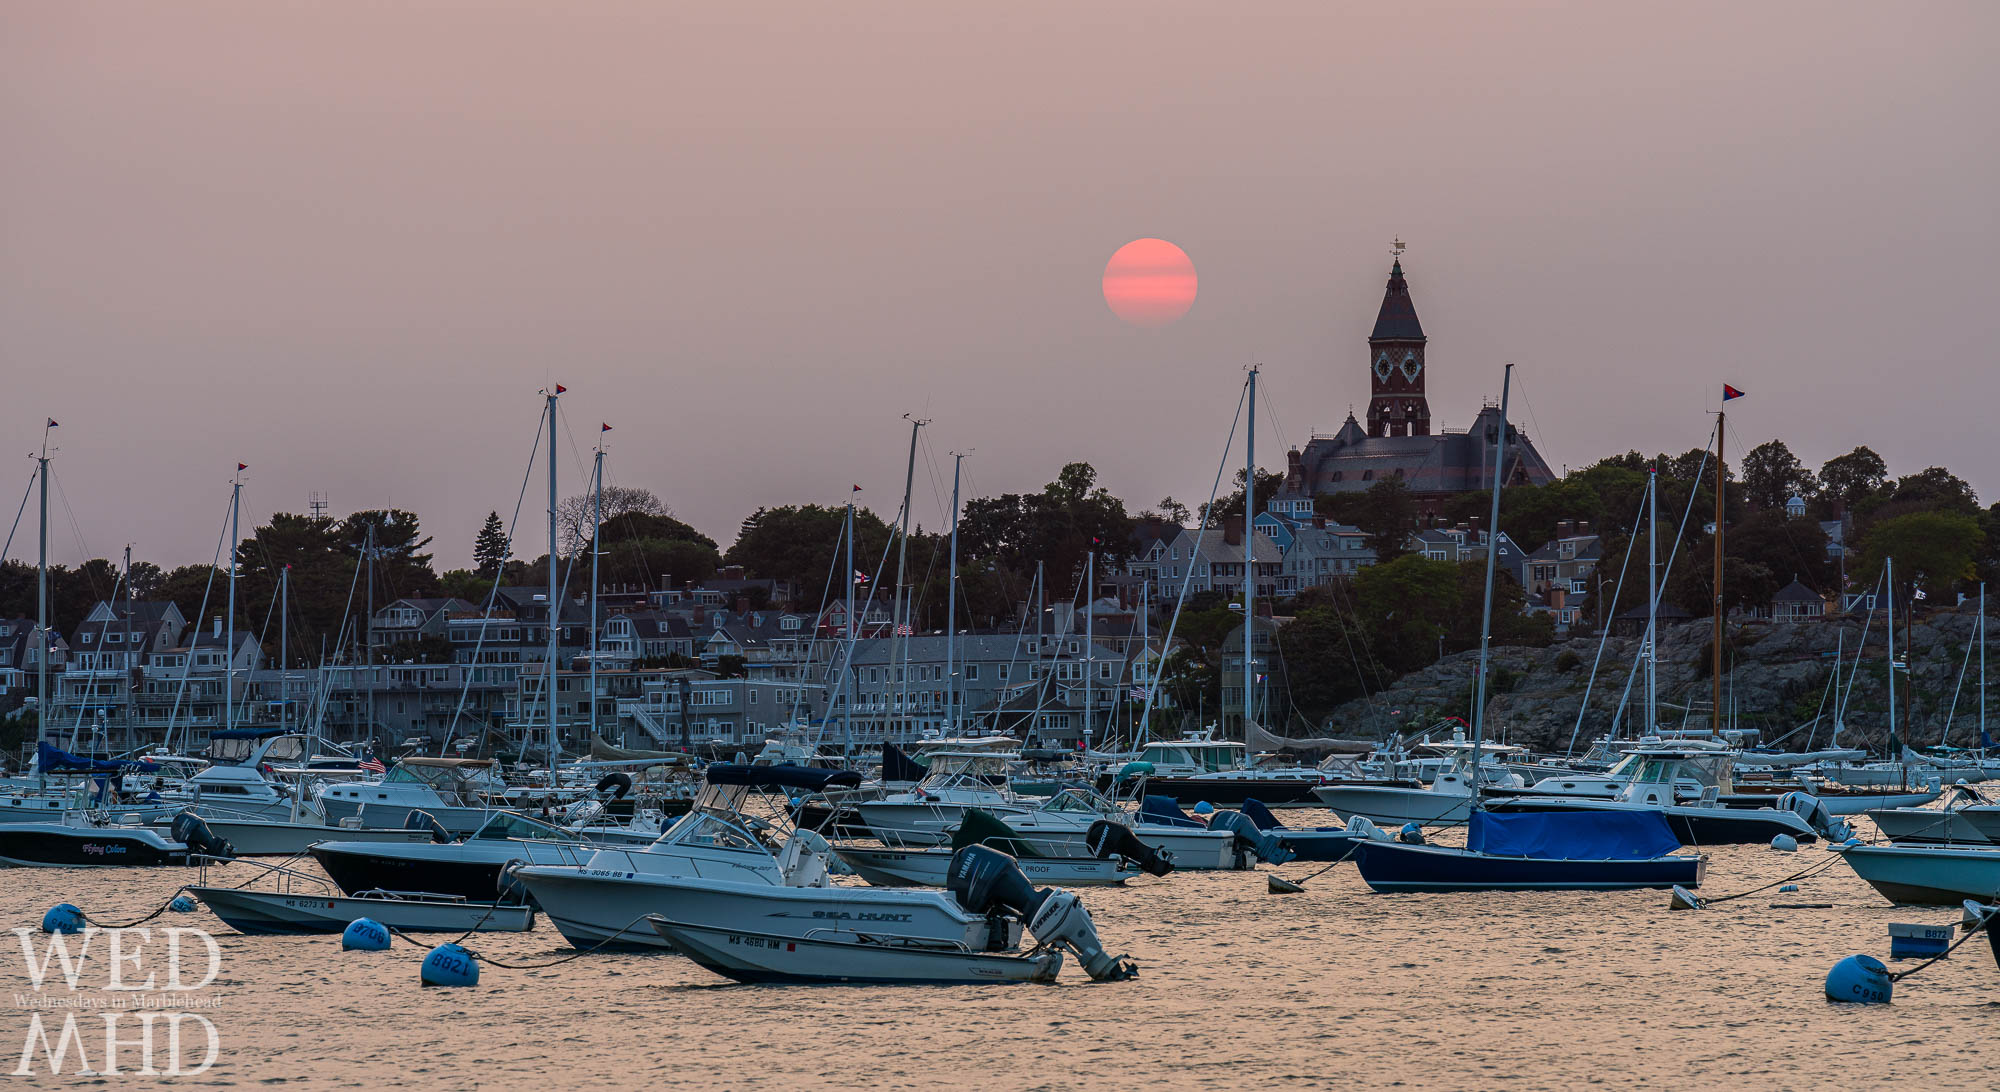 Haze created by fires on the west coast makes for perfect conditions to capture a smoky sunset over Marblehead Harbor on a September evening